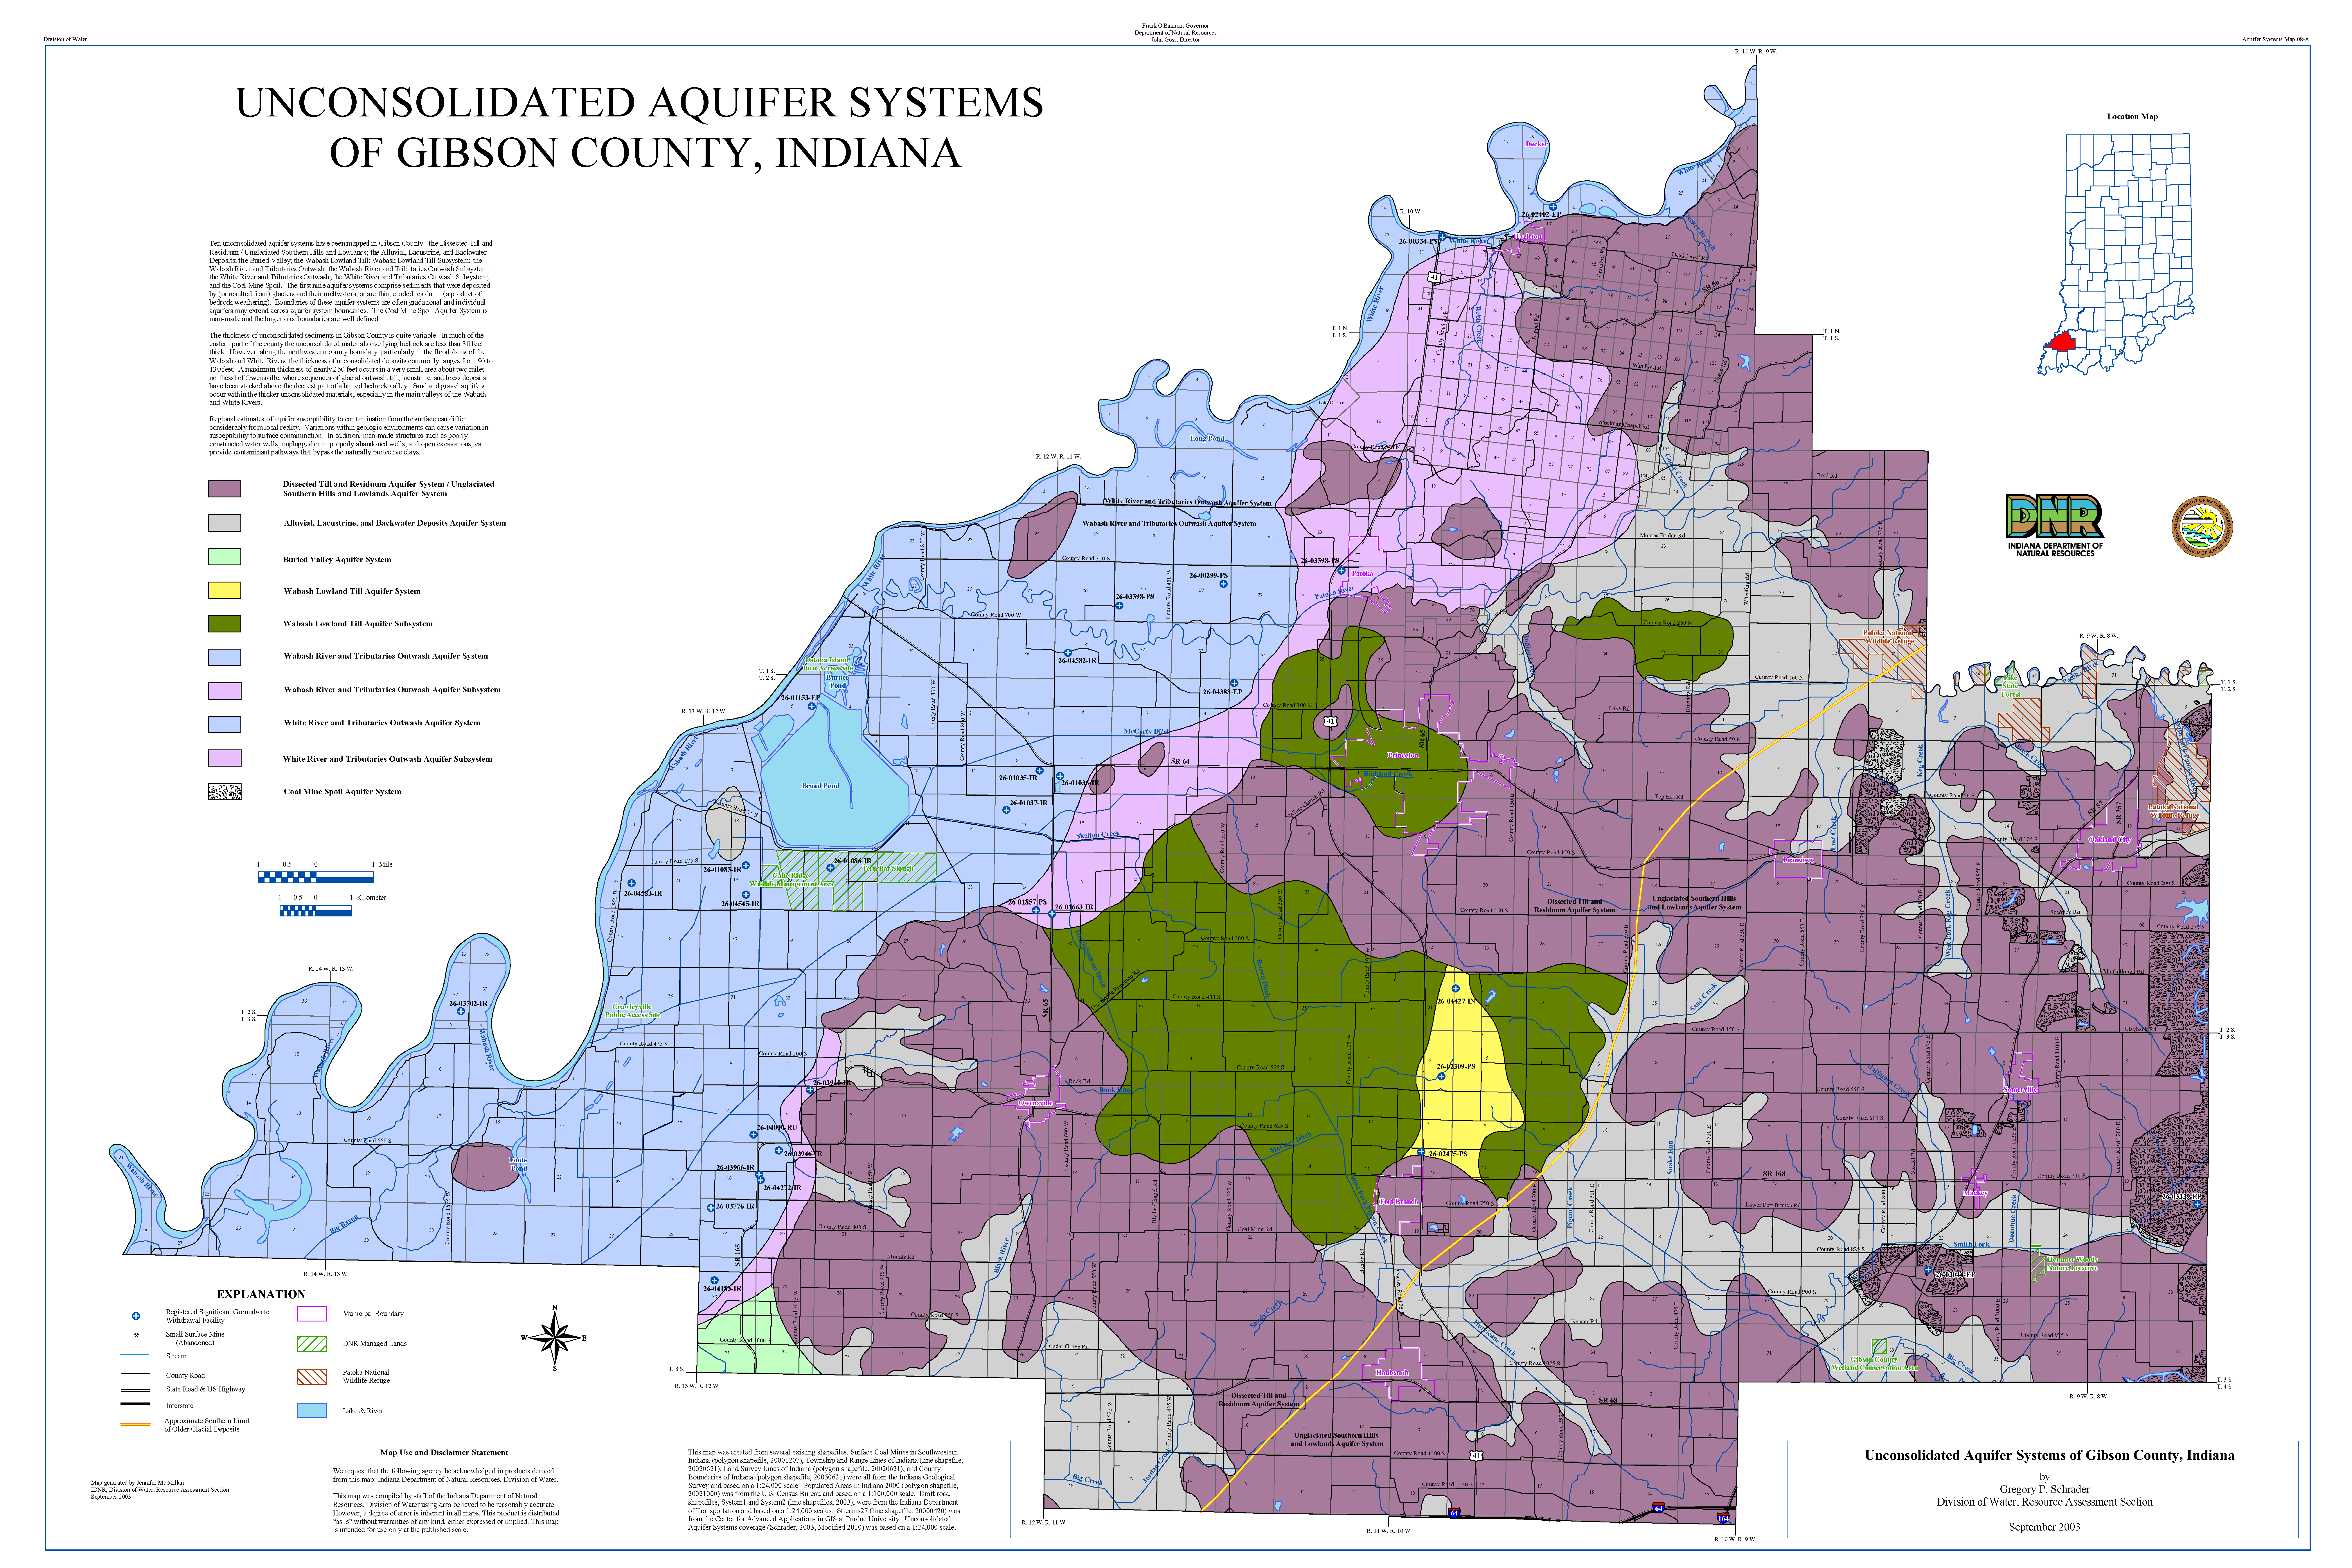 Gibson County Indiana Map.Dnr Aquifer Systems Maps 08 A And 08 B Unconsolidated And Bedrock